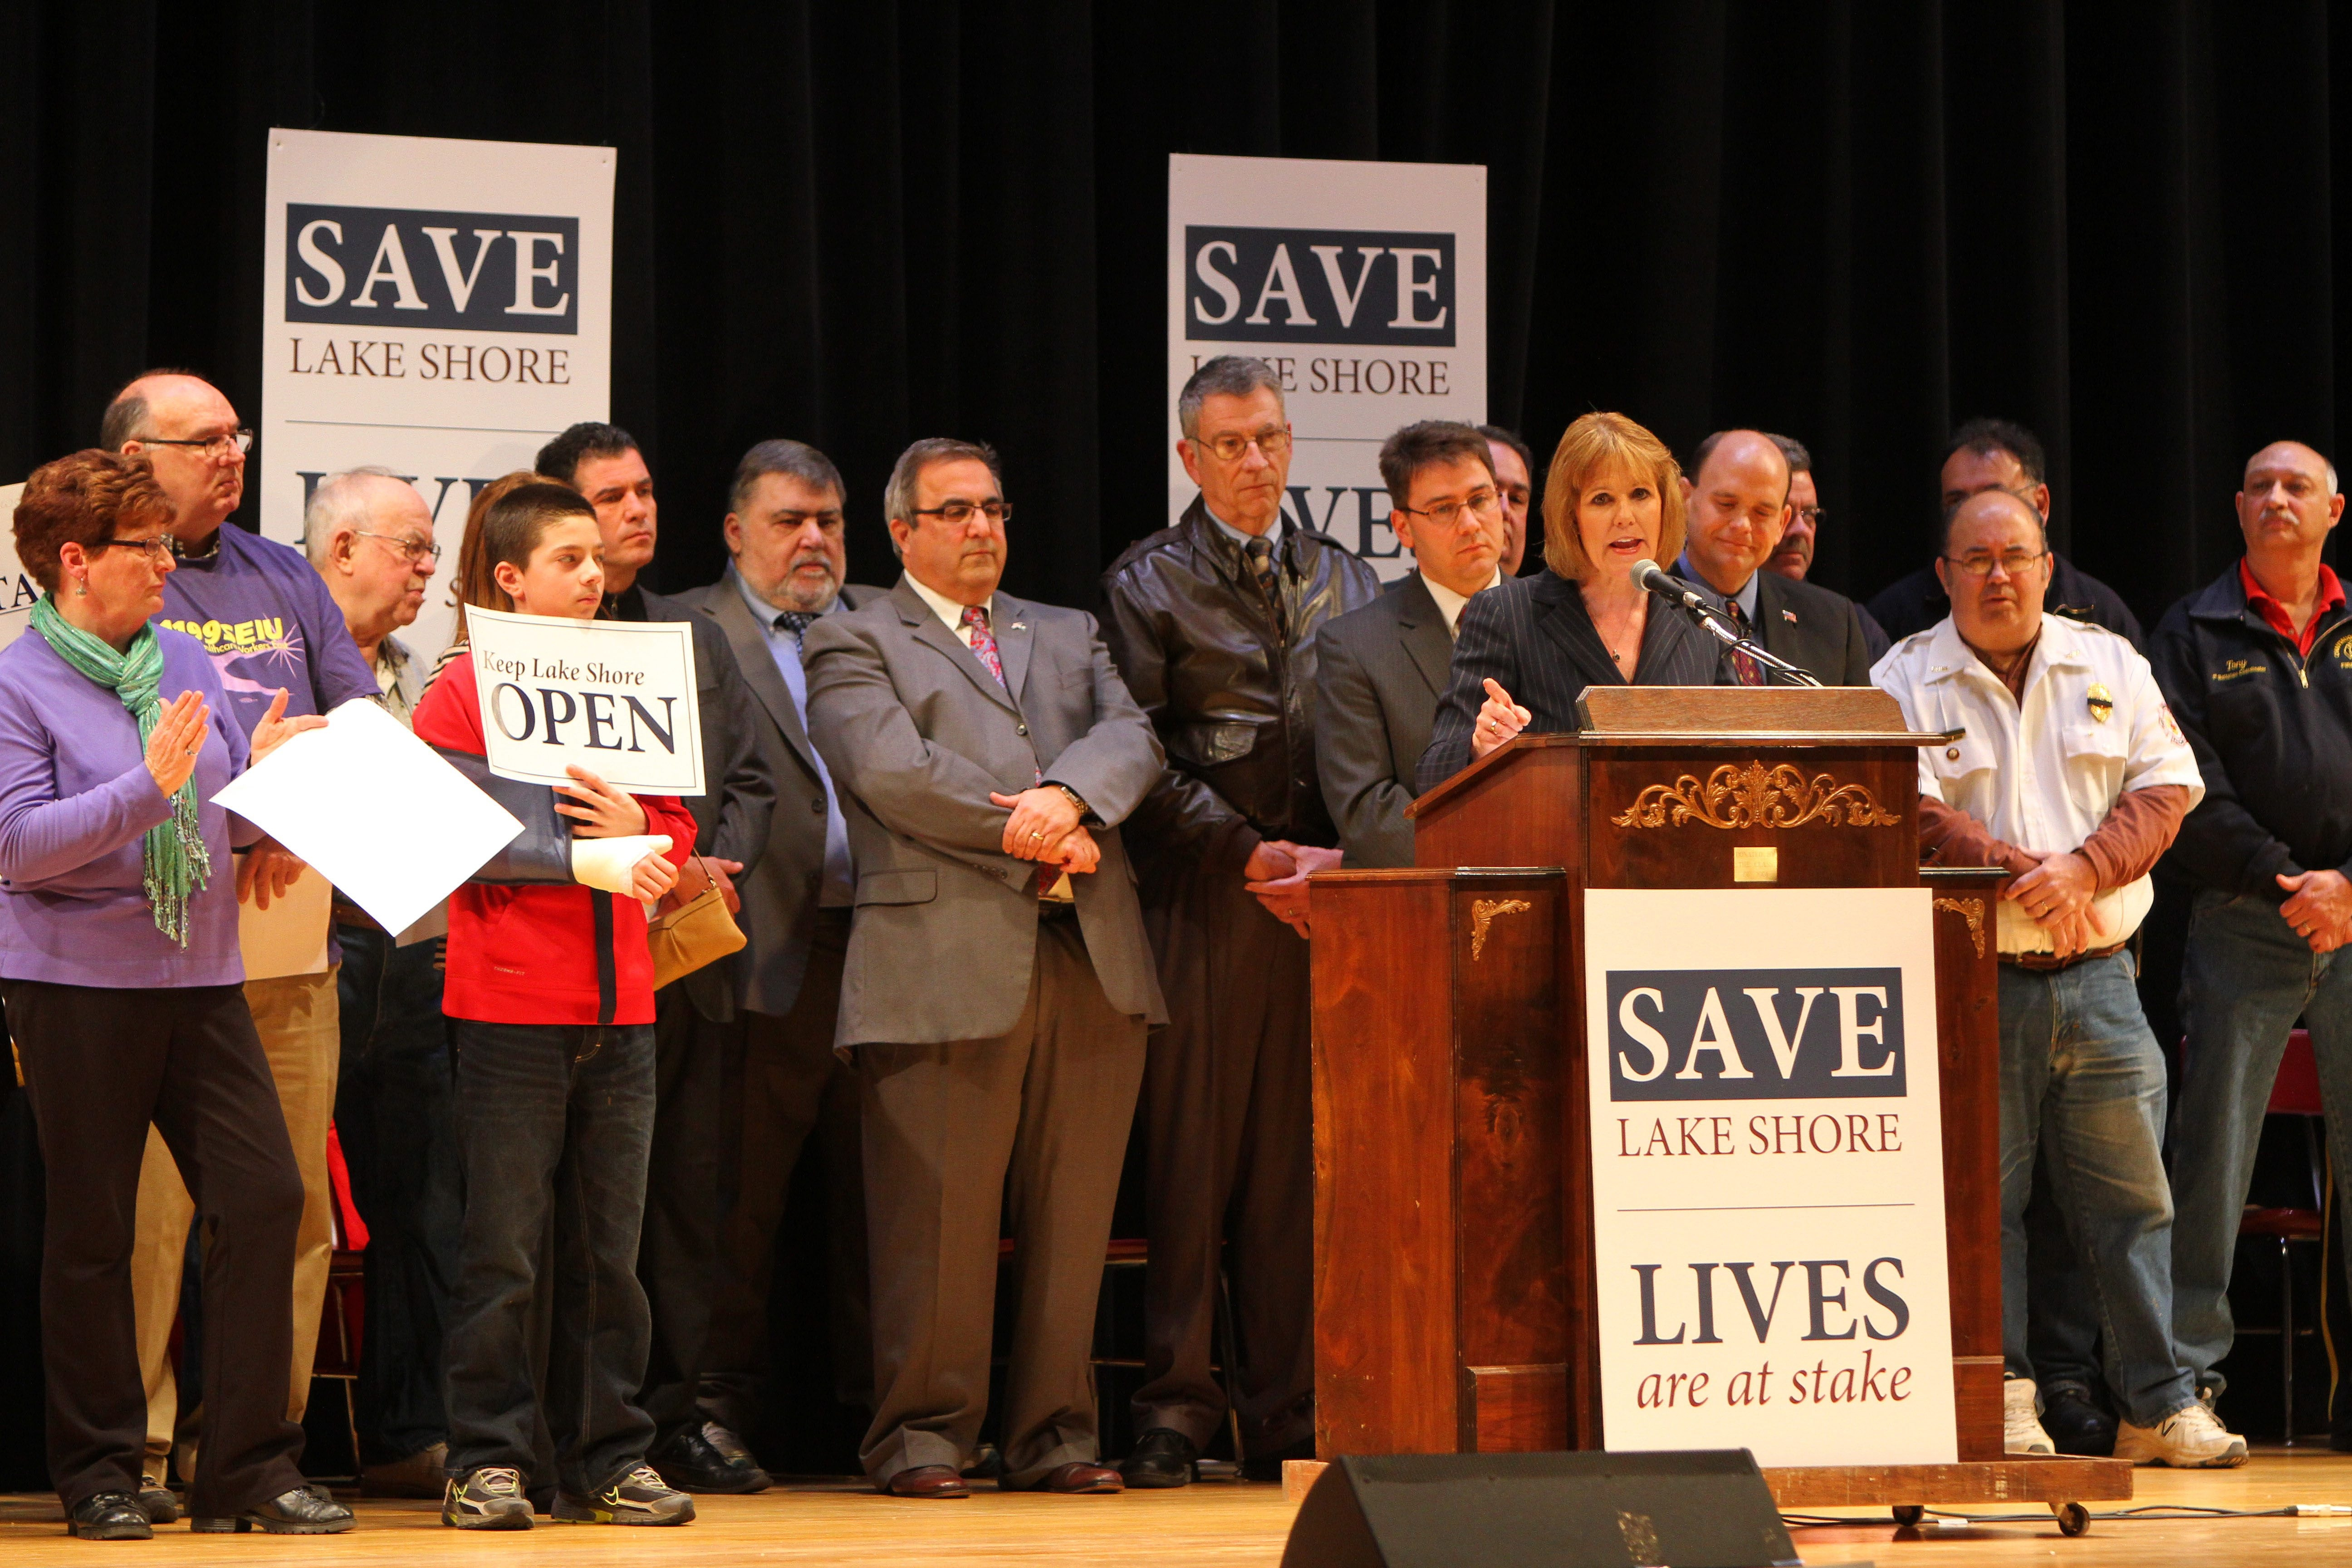 State Sen. Catharine Young speaks in a packed Silver Creek High School Auditorium during a rally to save Lake Shore Health Care Center on Saturday. Young told the crowd that Gov. Andrew M. Cuomo supports efforts to keep the hospital open.